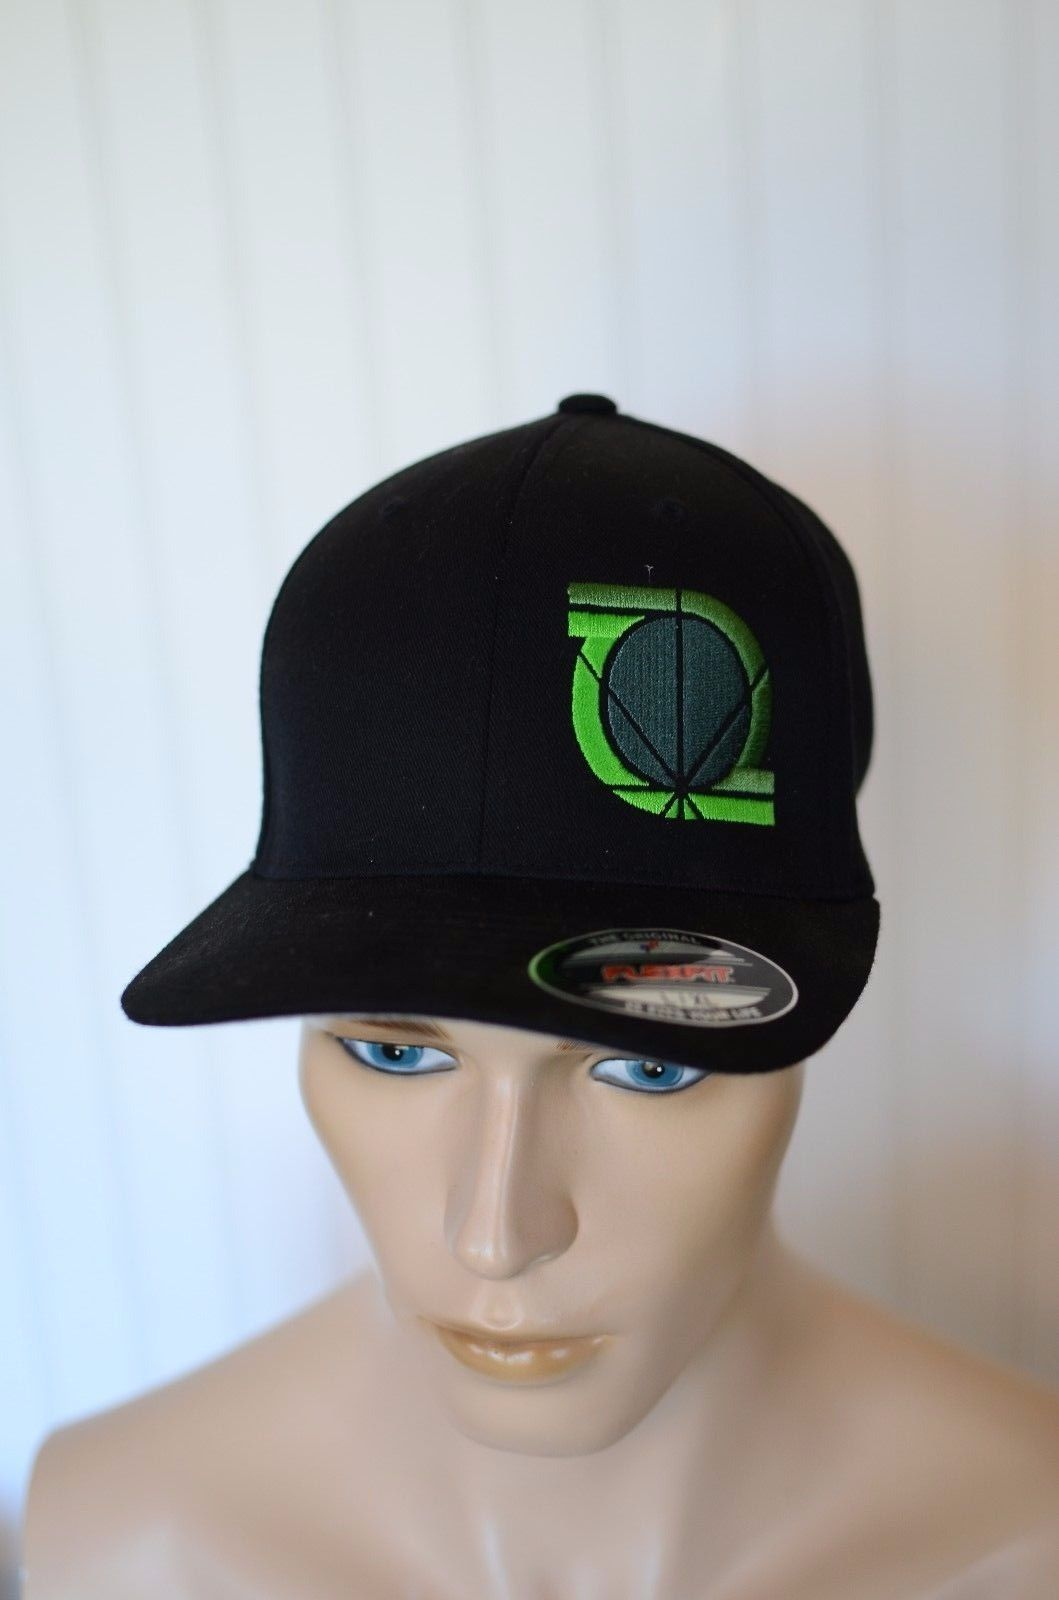 eb6bc88cdaf Port Authority Black w  Green Logo Fitted L XL Trucker Baseball Hat Cap -   13.85